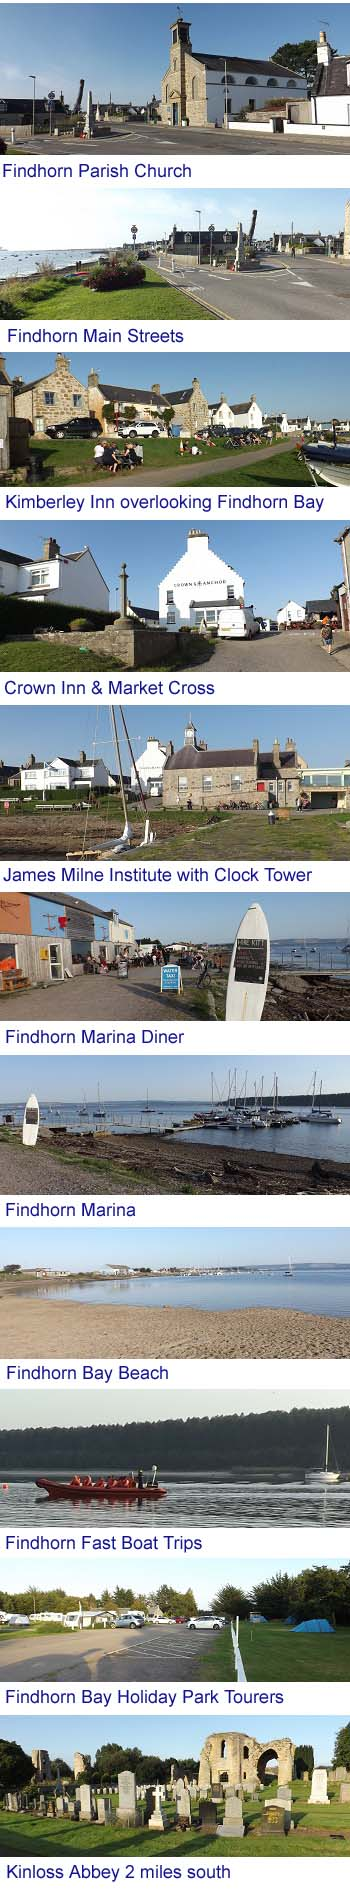 Findhorn Photos